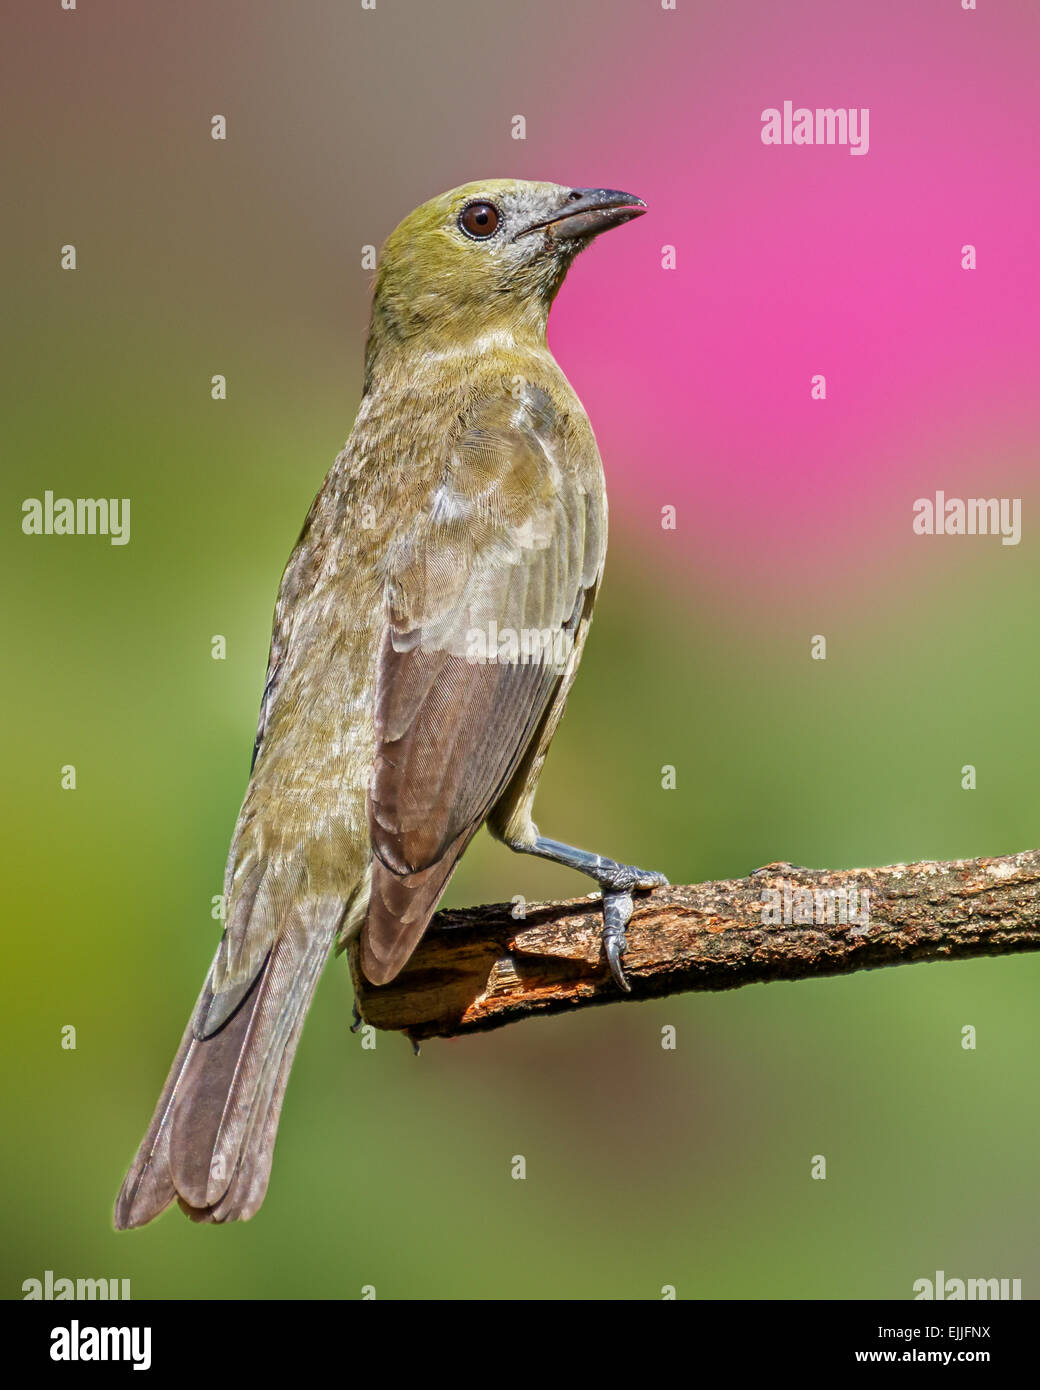 Palm Tanager (Thraupis palmarum) perched, Georgetown, Guyana. - Stock Image